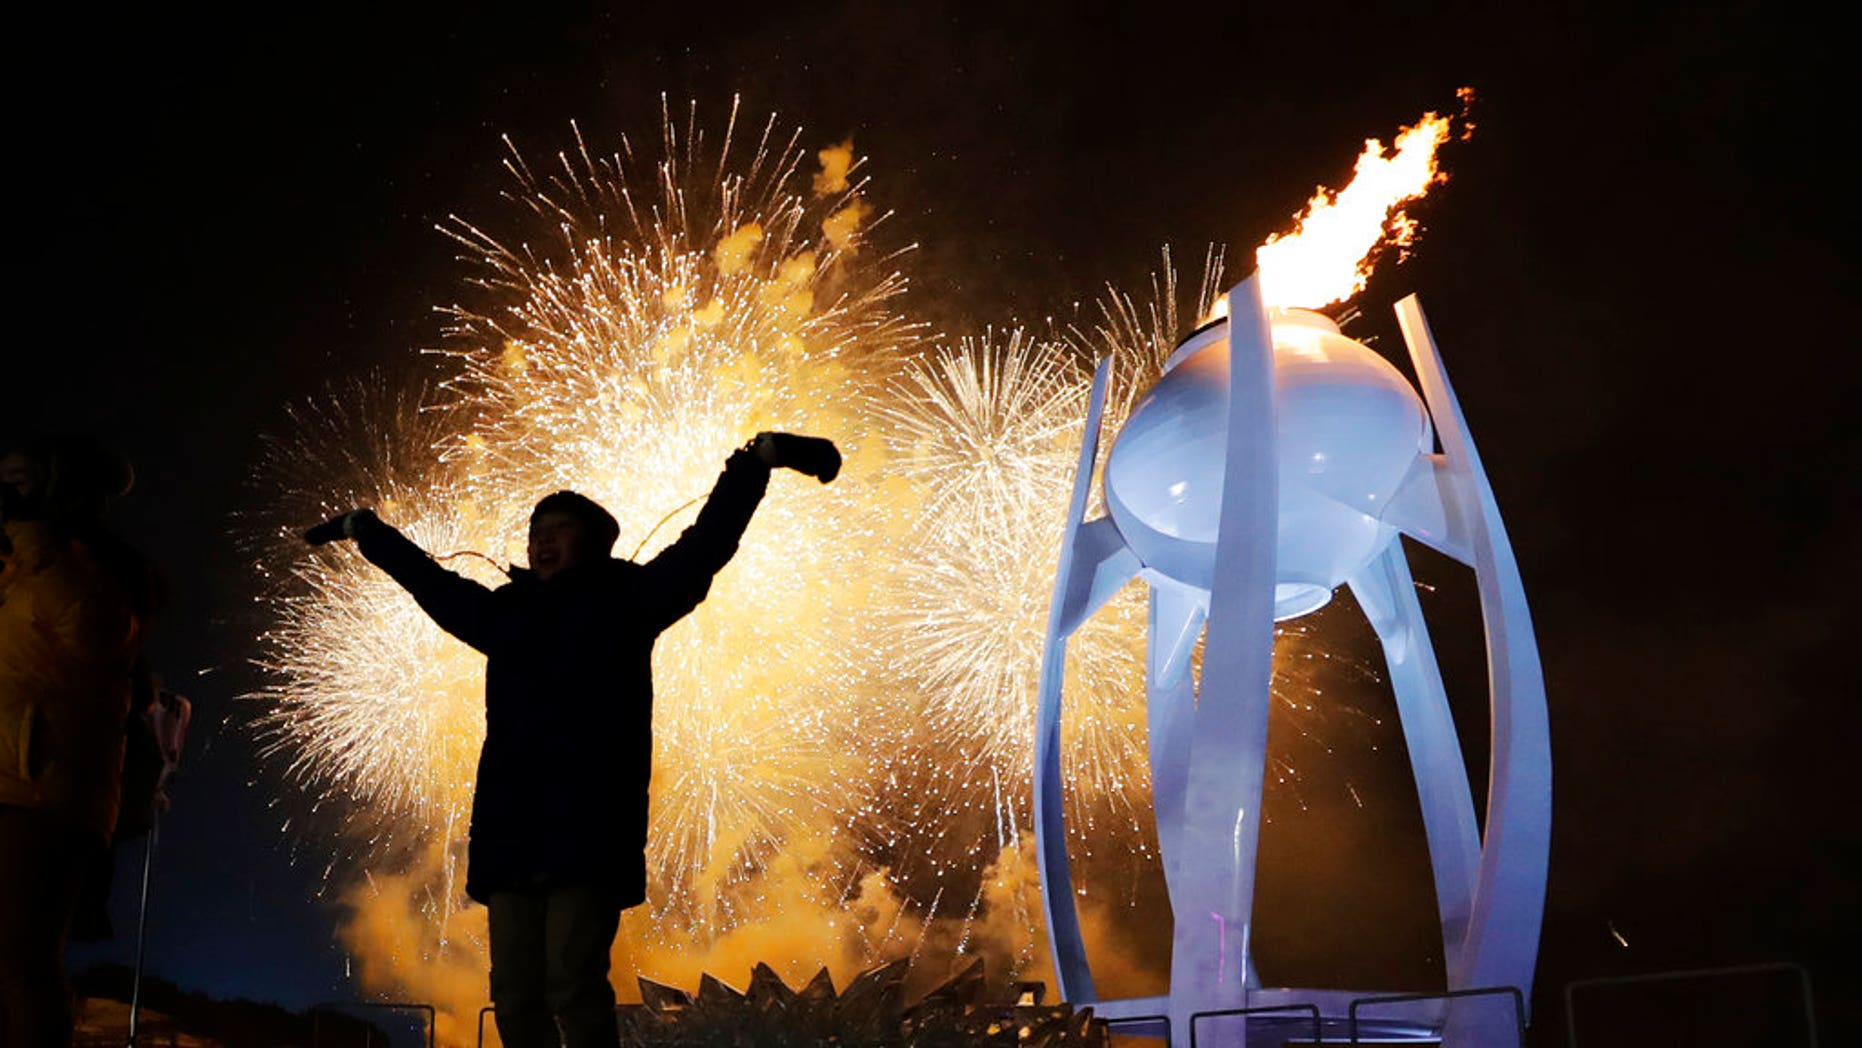 Organizers for the 2018 Winter Olympics say a cyberattack may have occurred during Friday's opening ceremony in Pyeongchang, South Korea.